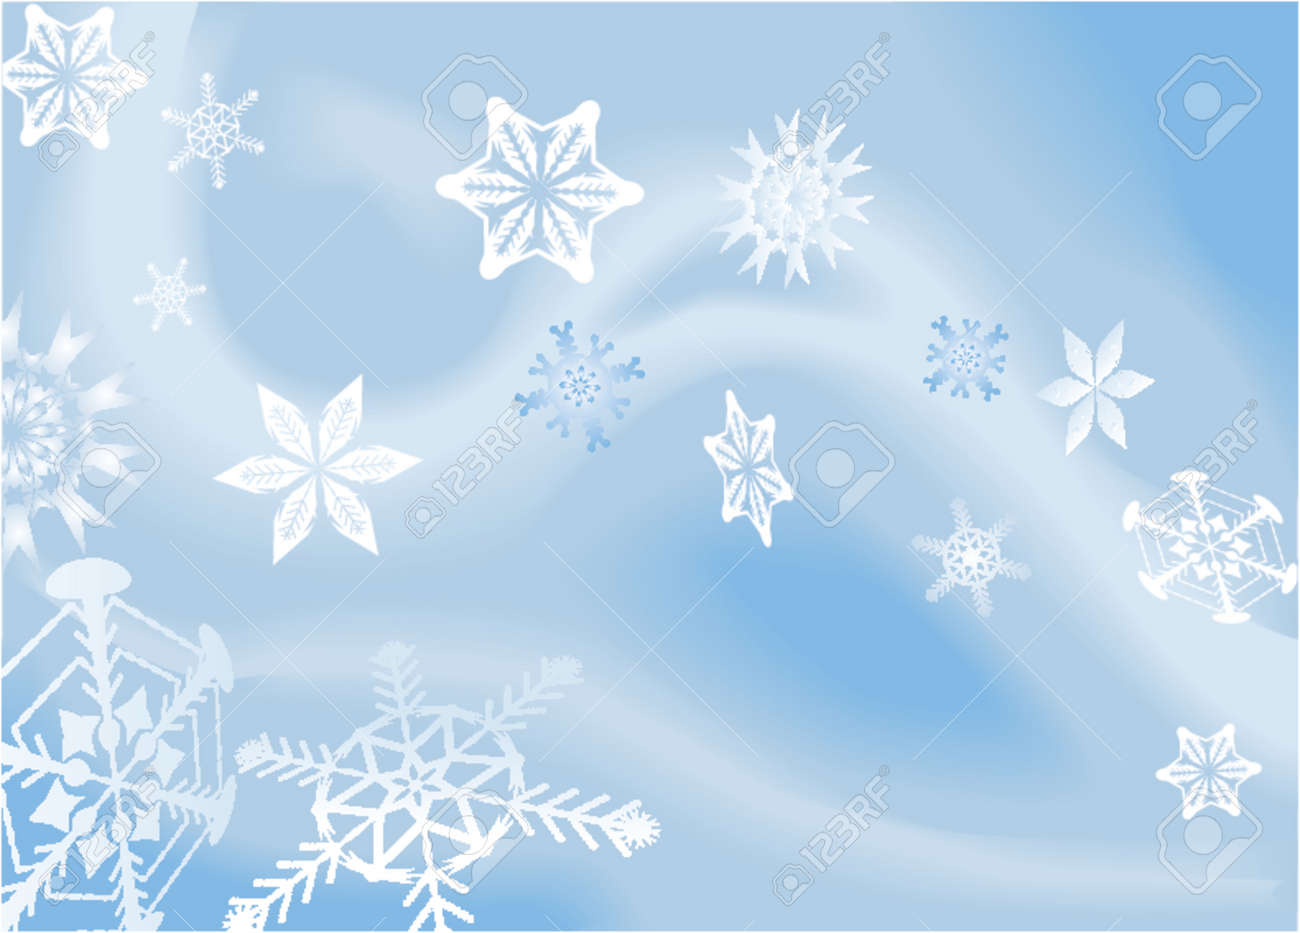 a winter background with snowflakes falling shading by blends